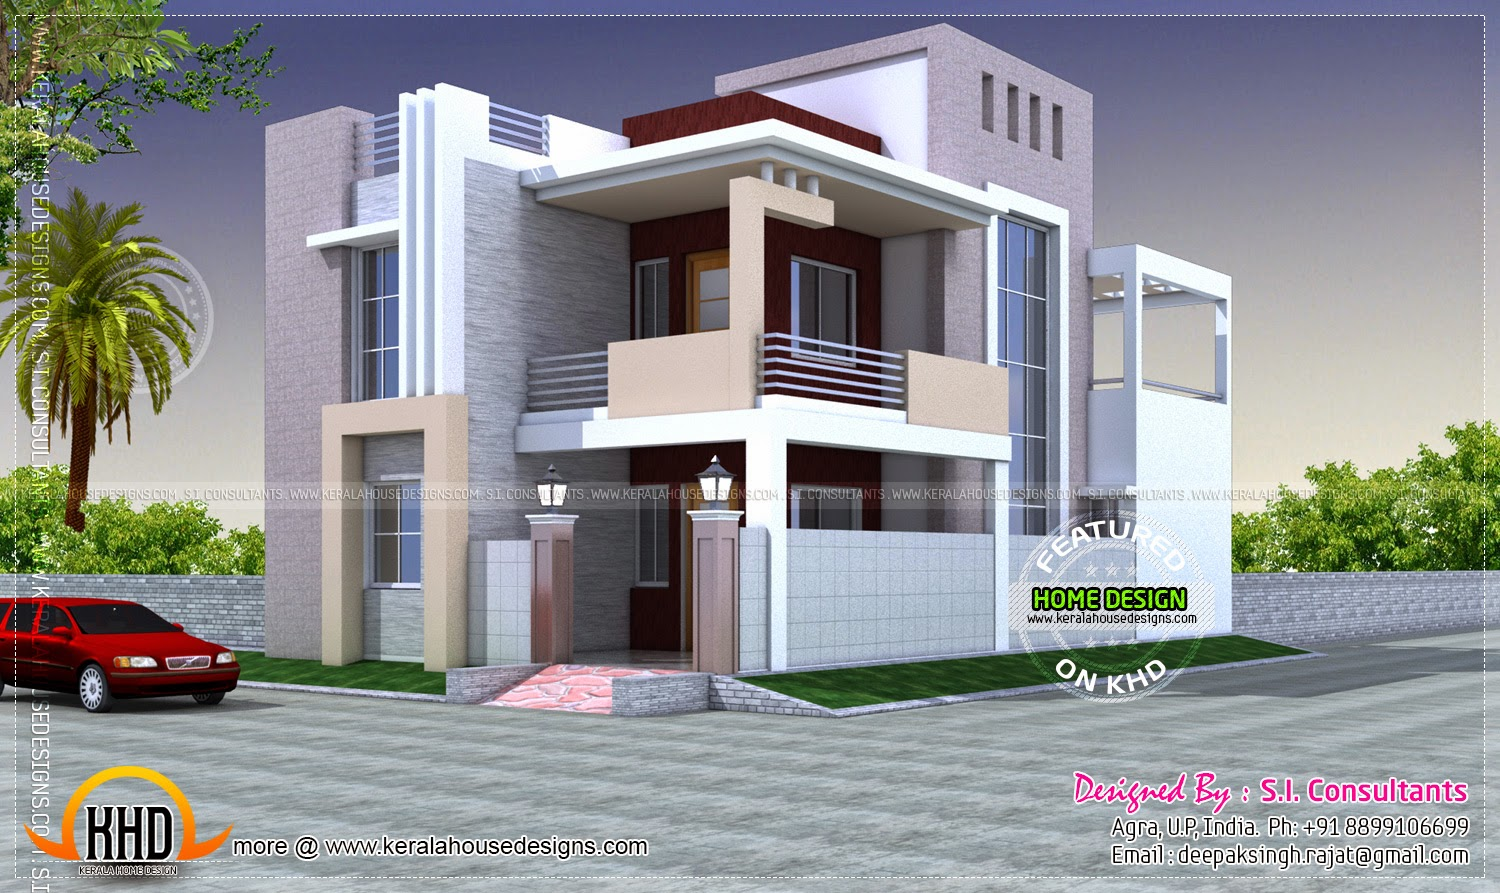 House exterior elevation modern style kerala home design for New kerala house plans with front elevation